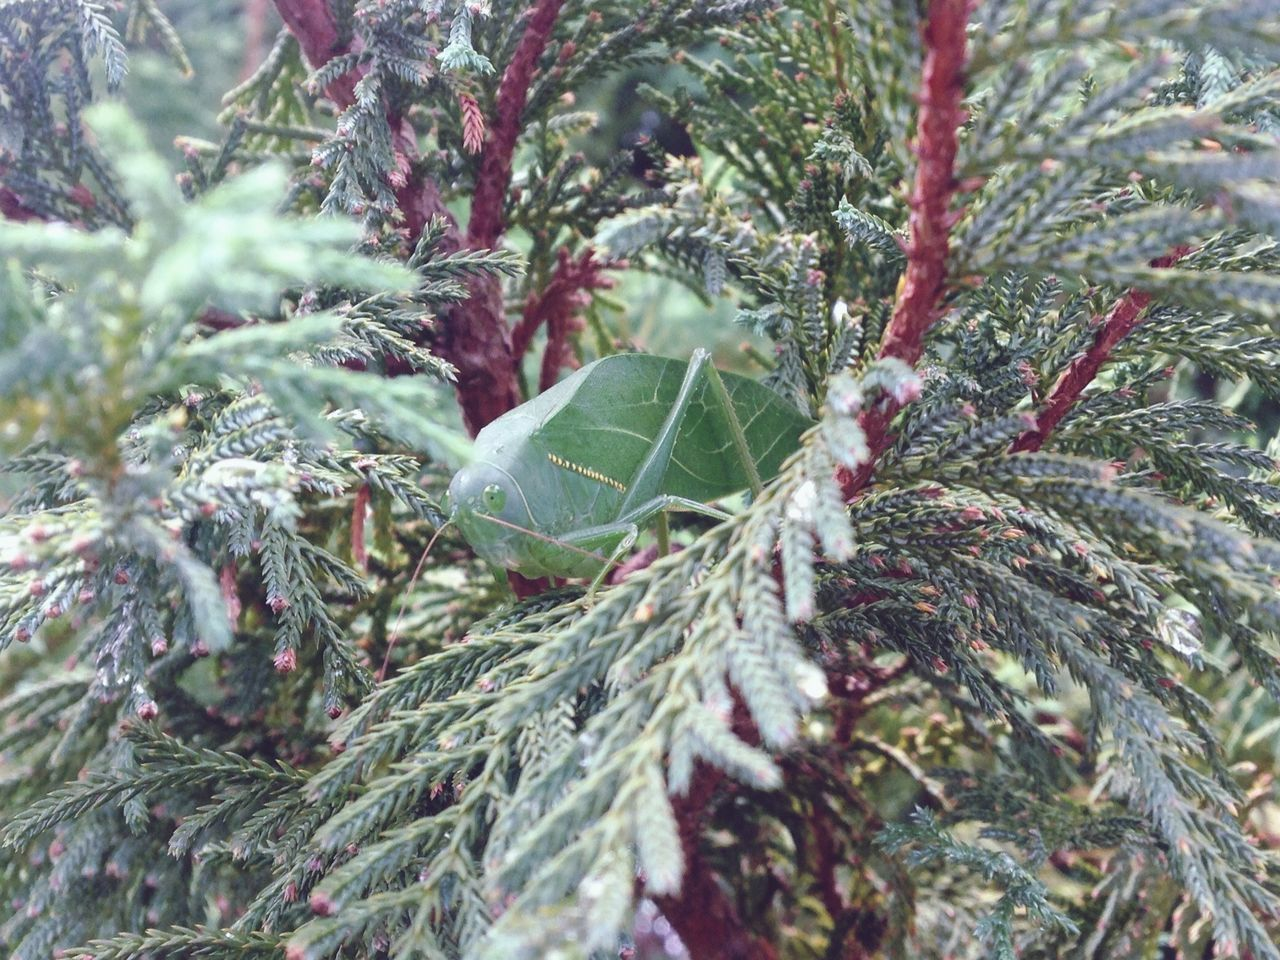 Esperança - camouflage Camouflaged Insect Tree Close-up Nature Outdoors Plant Beauty In Nature Cold Temperature EyeEmNewHere